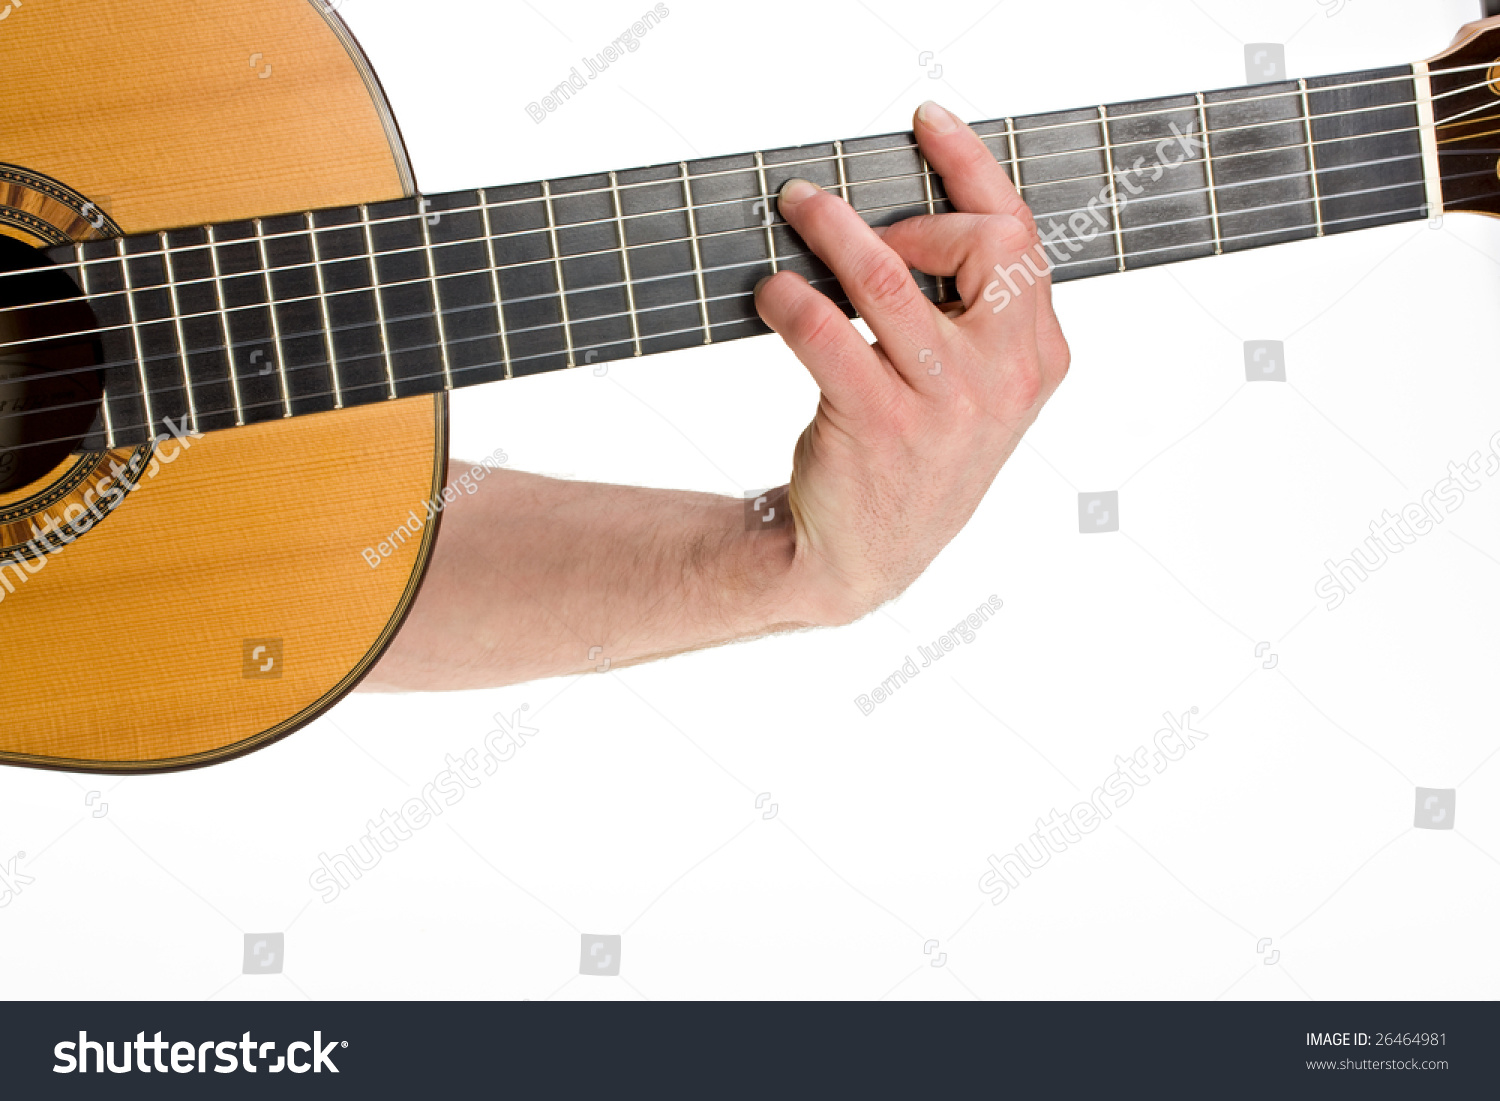 Male Hand Holding Chord On Classsical Stock Photo 26464981